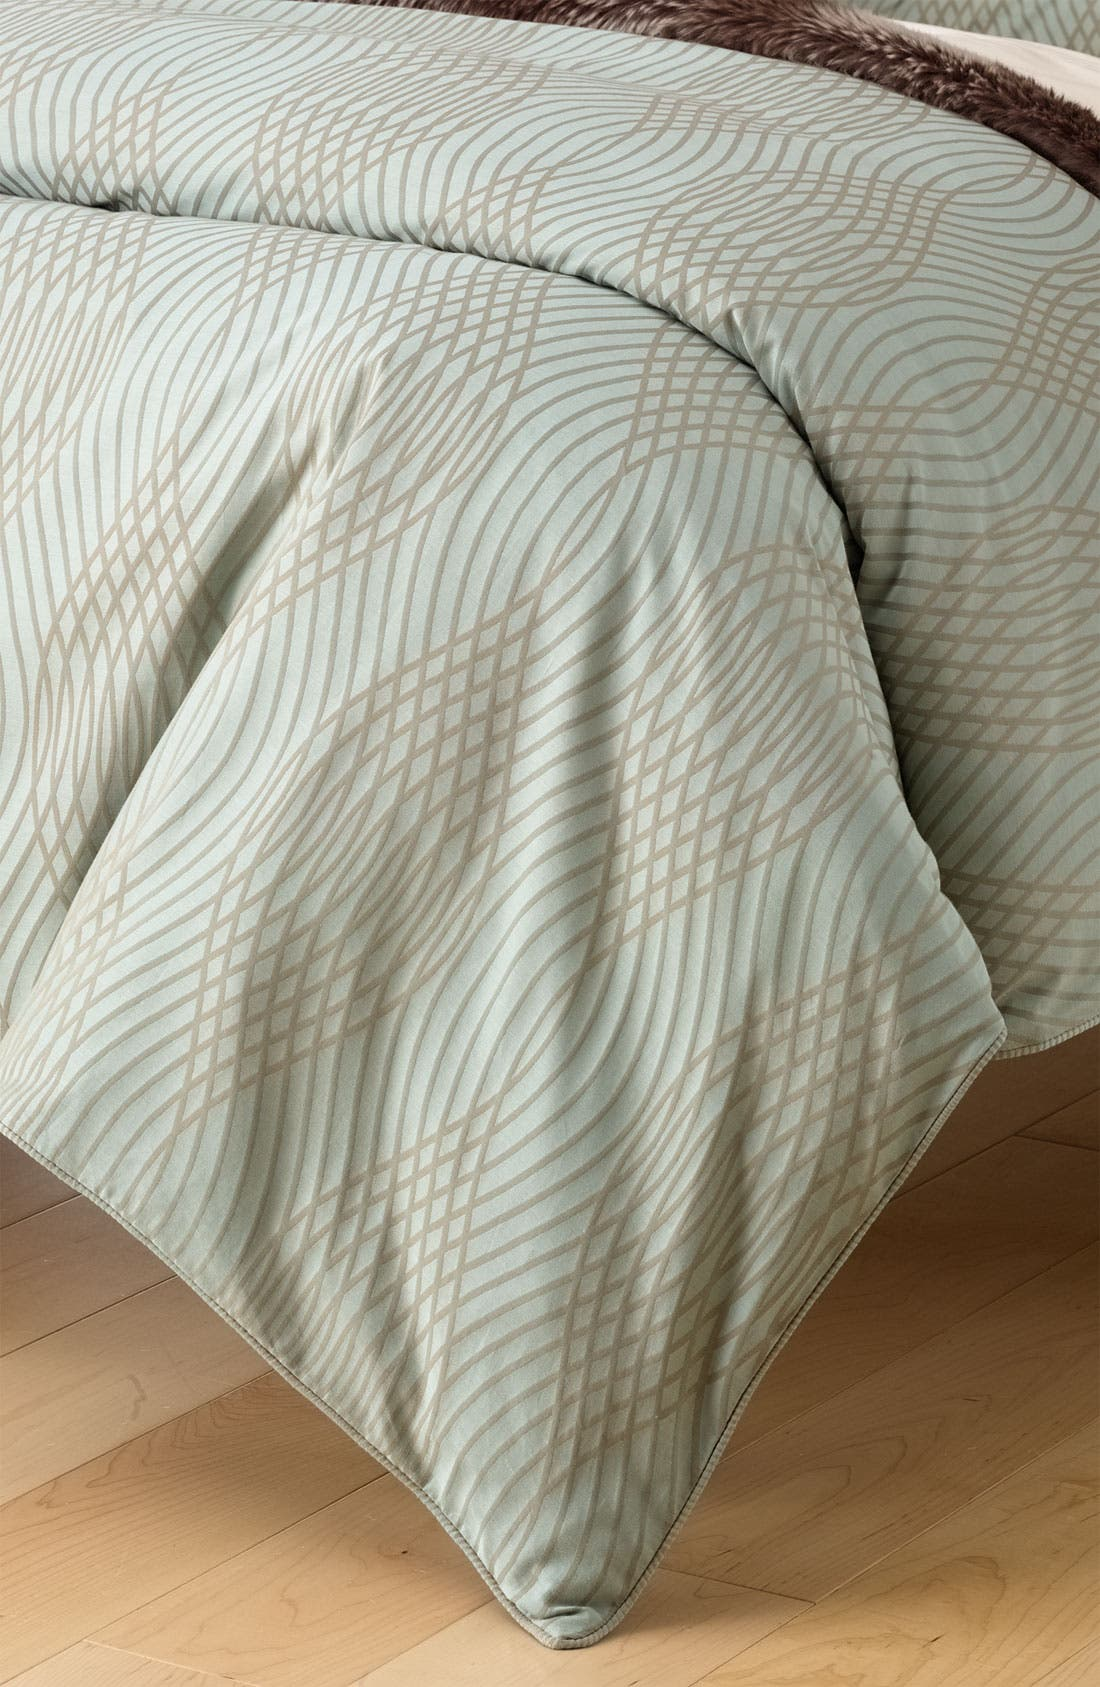 Alternate Image 1 Selected - Nordstrom at Home 'Nouveau Wave' 300 Thread Count Duvet Cover